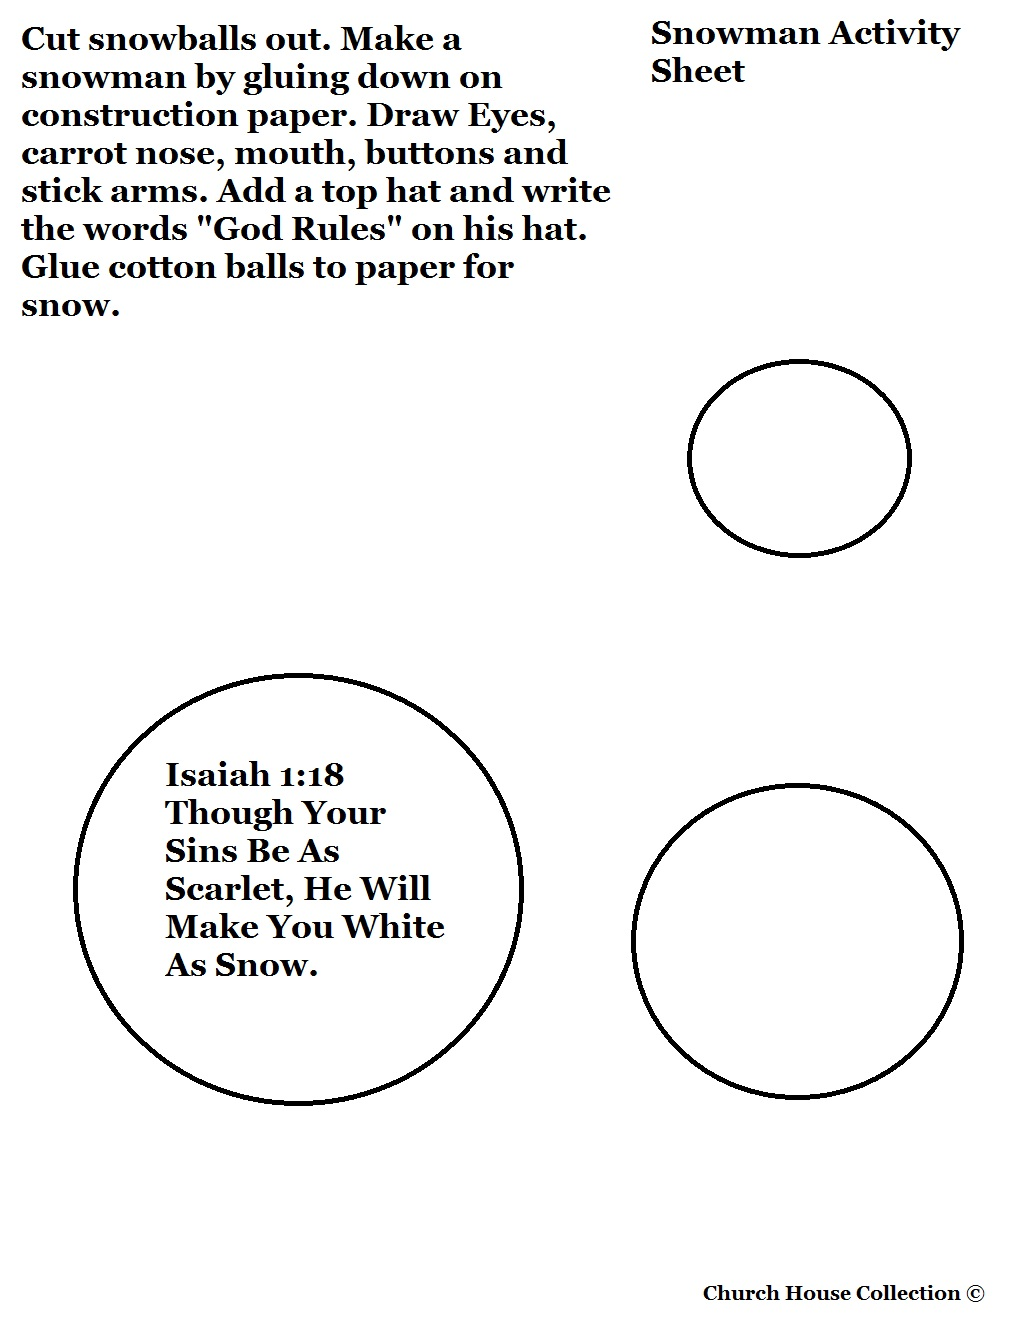 Snowman cutout sheet isaiah 118 snowman template black and white pronofoot35fo Image collections